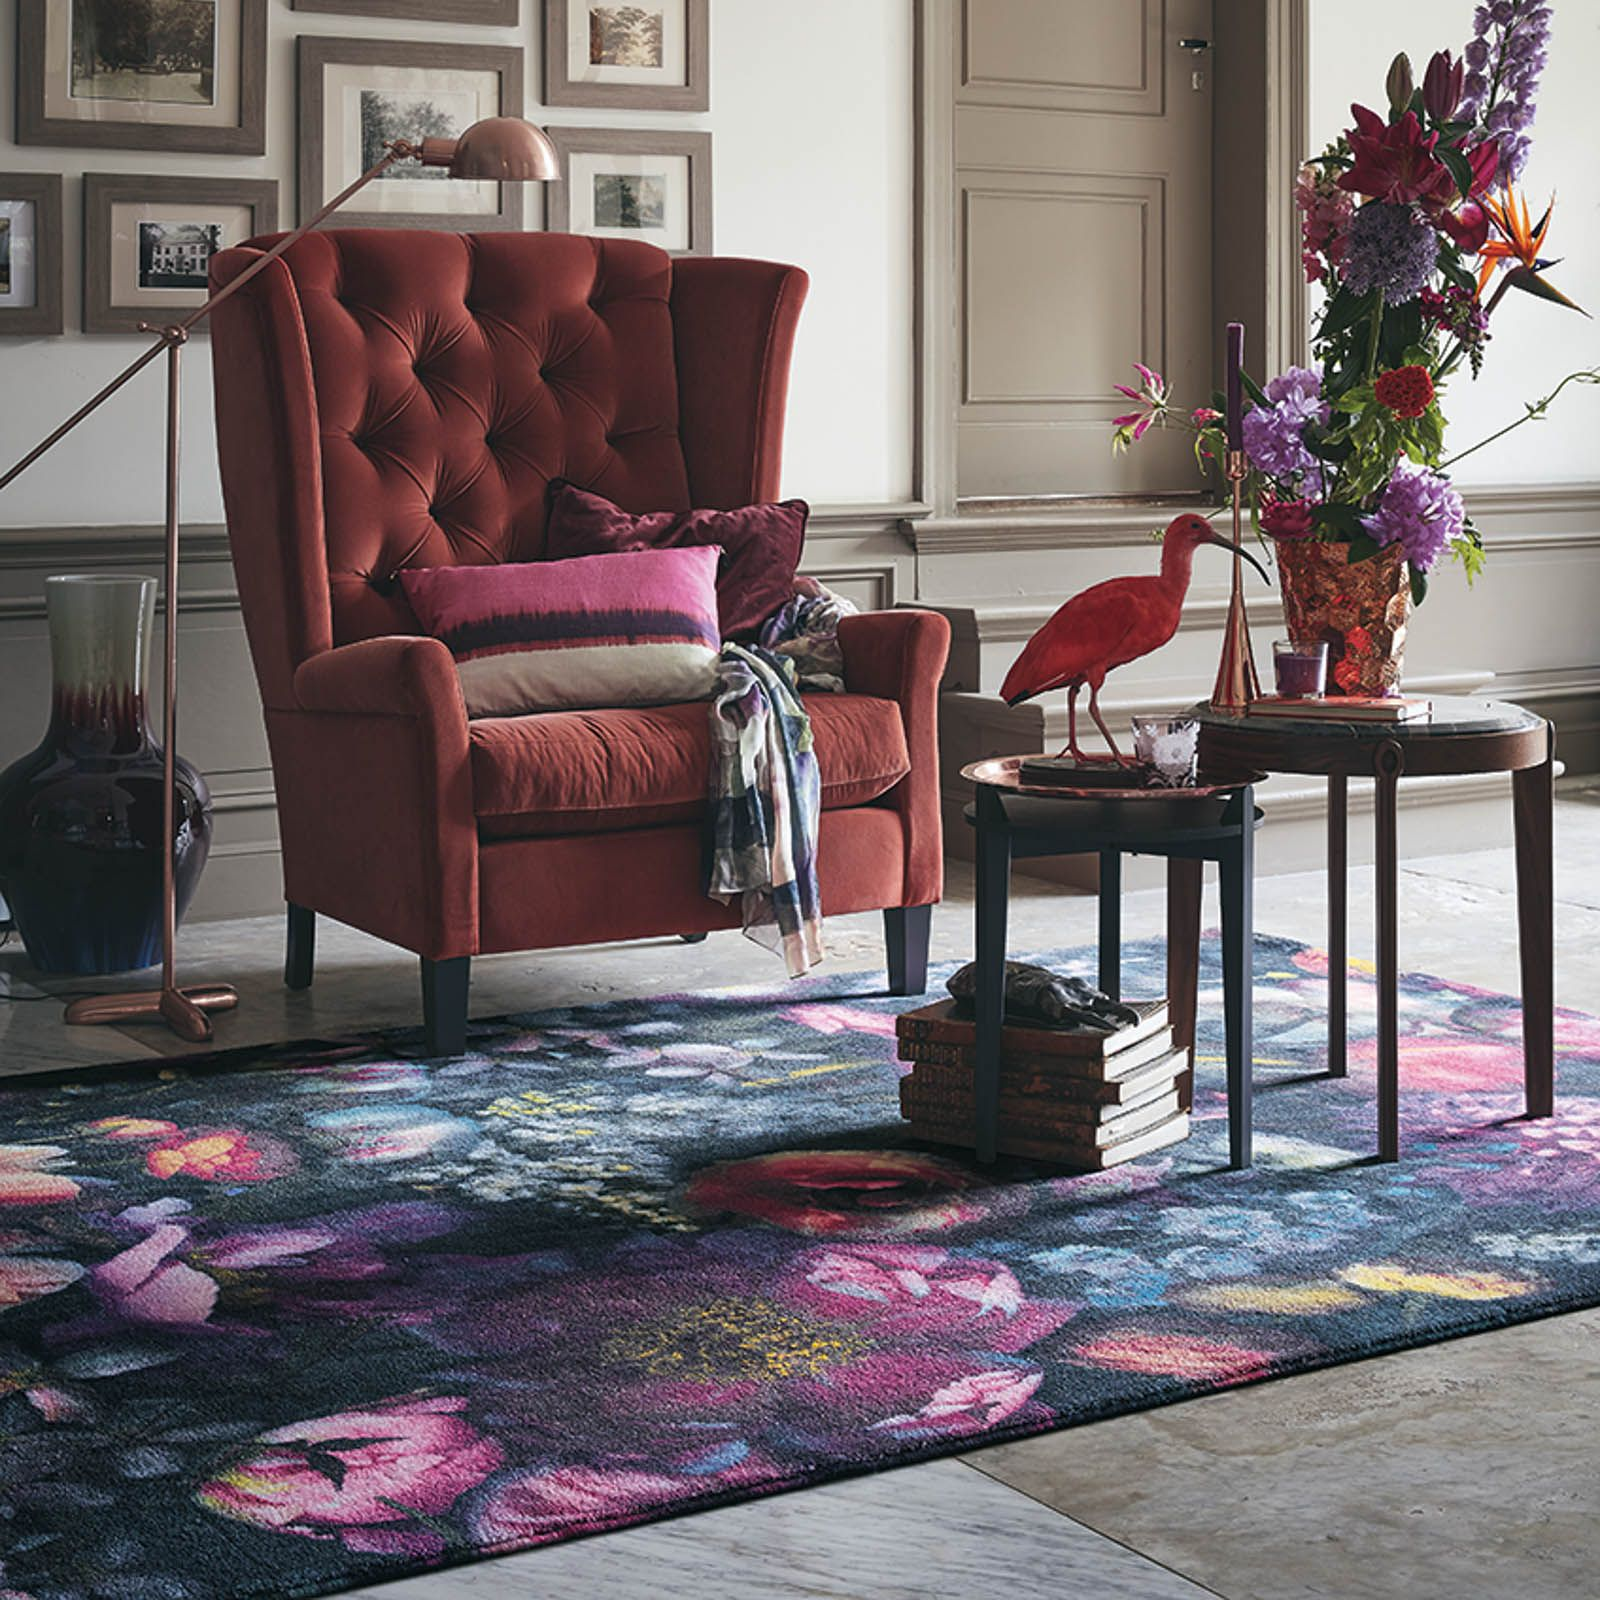 Shadow Fl Rugs 58005 By Ted Baker And